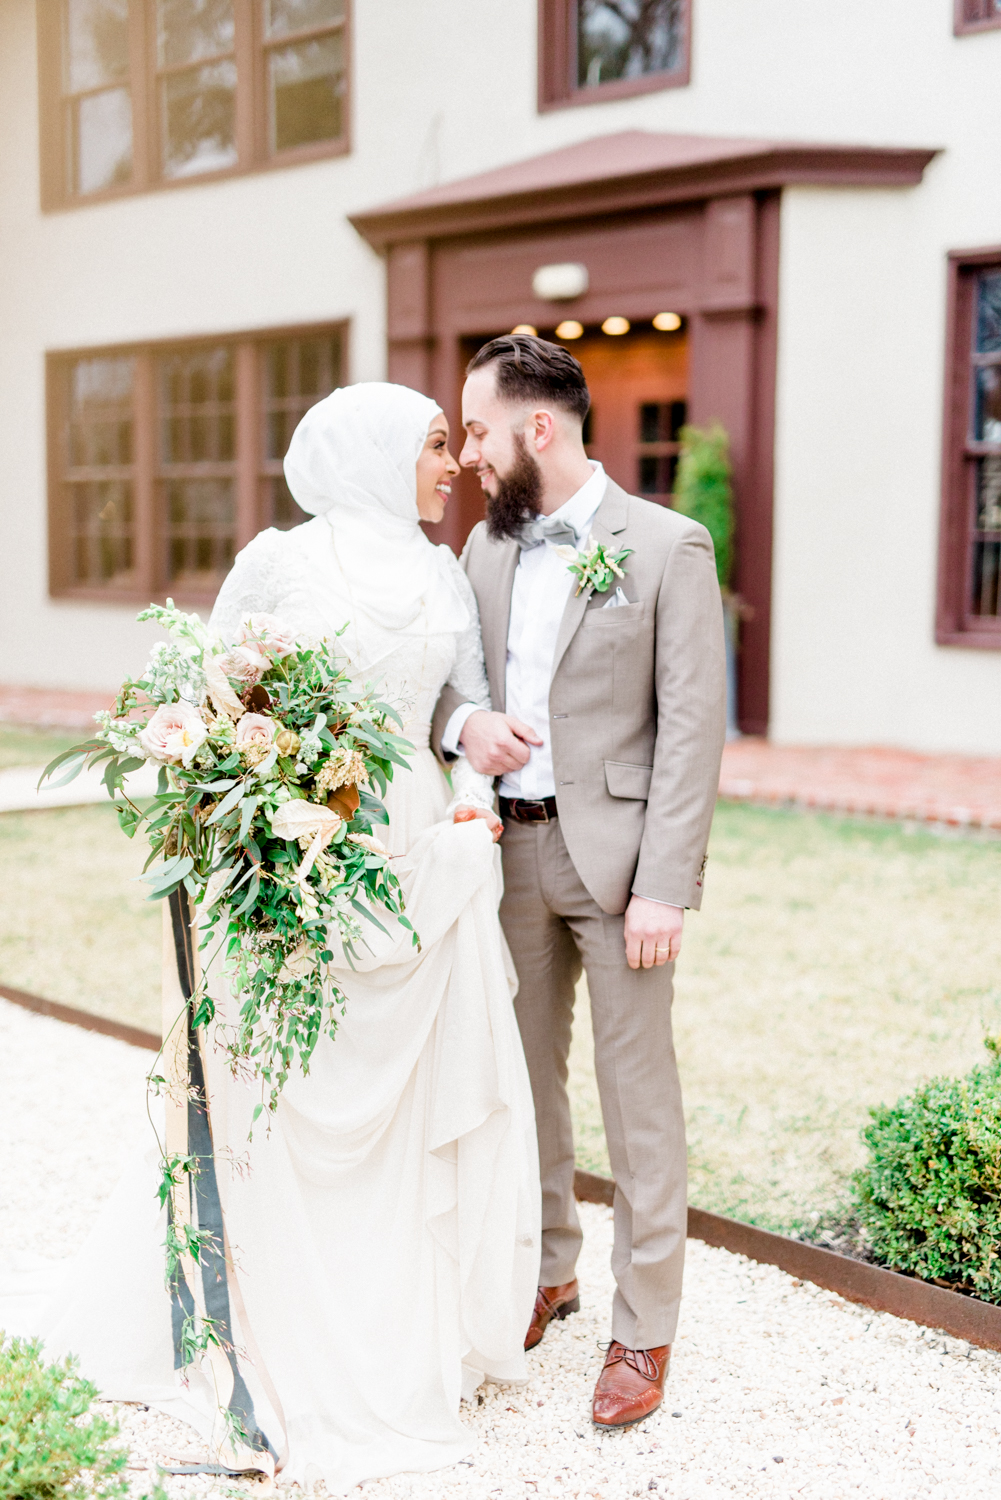 East meets west in this Muslim wedding inspiration shoot at Hotel du Village in New Hope, Pennsylvania